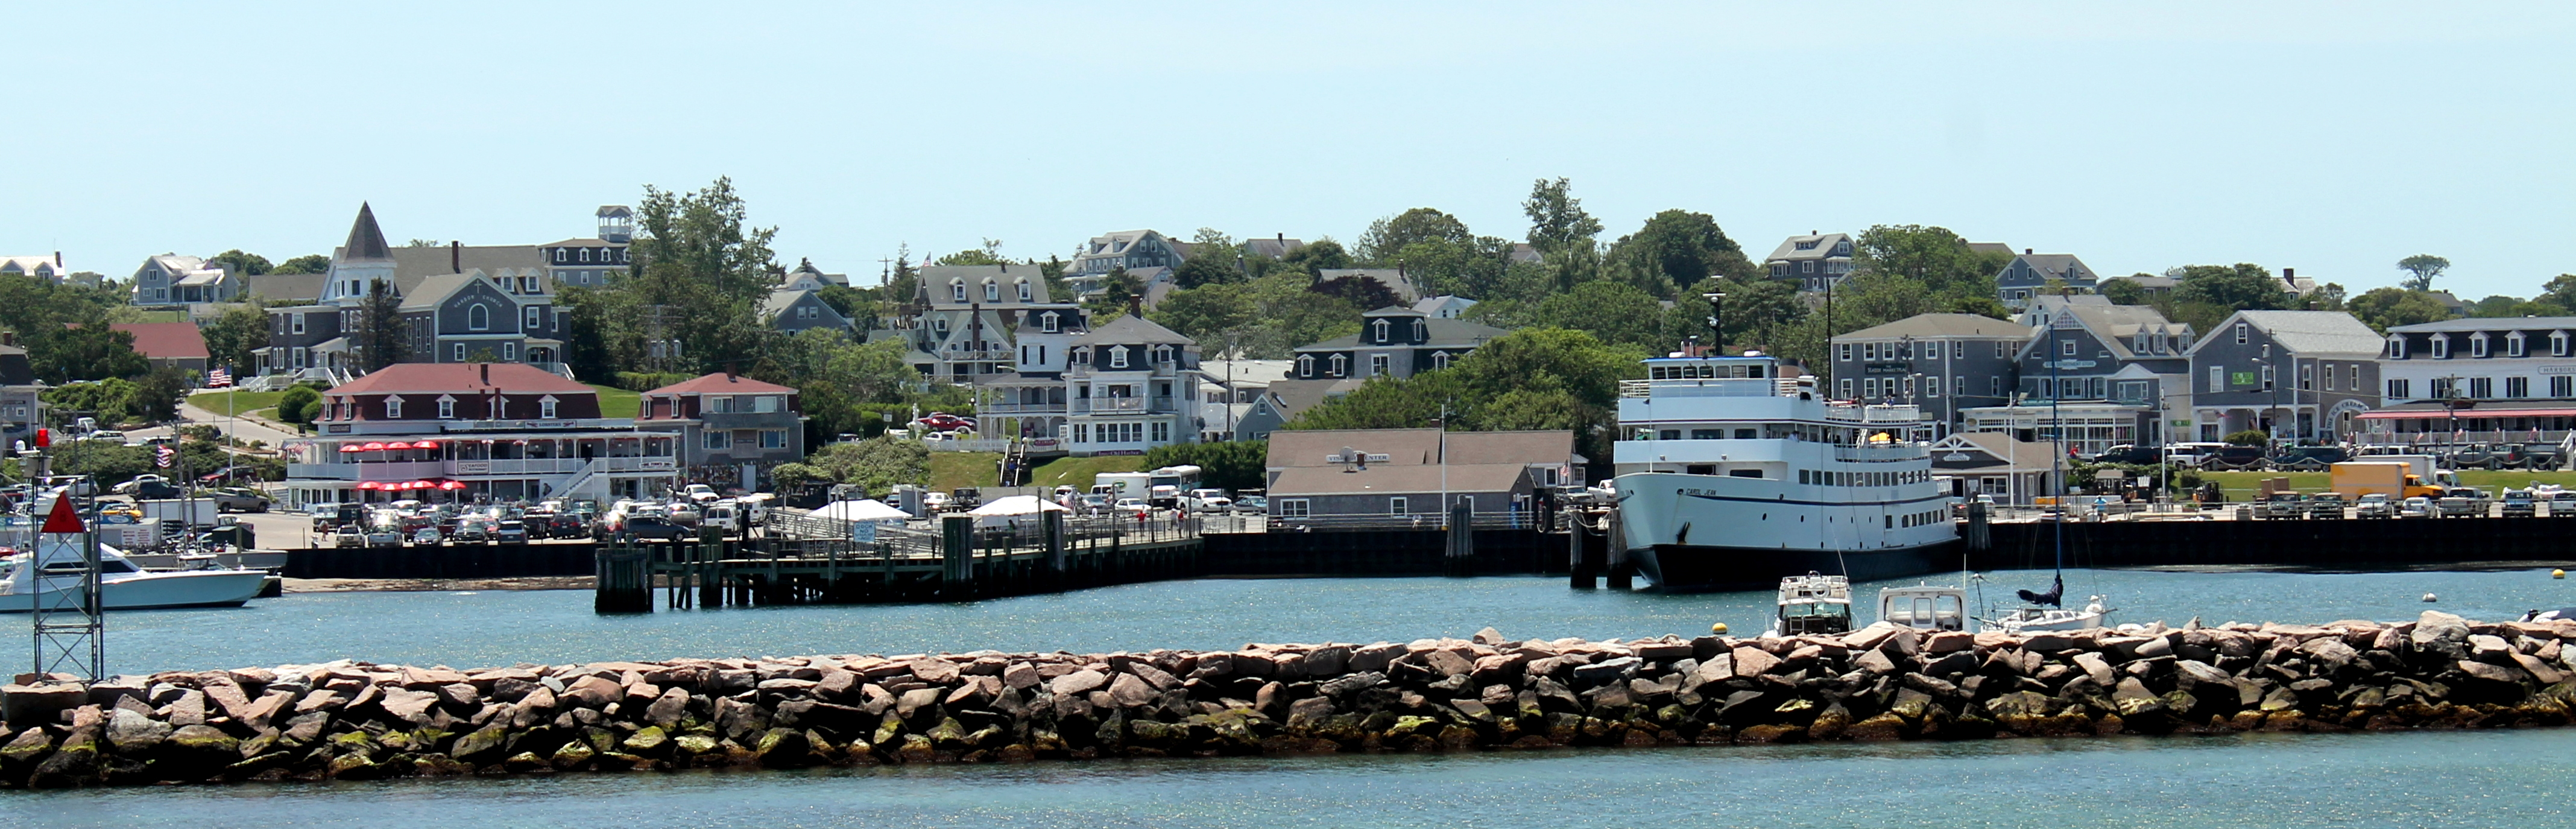 #176 – BLOCK ISLAND, OLD HARBOR VIEW  Be Creative Mary